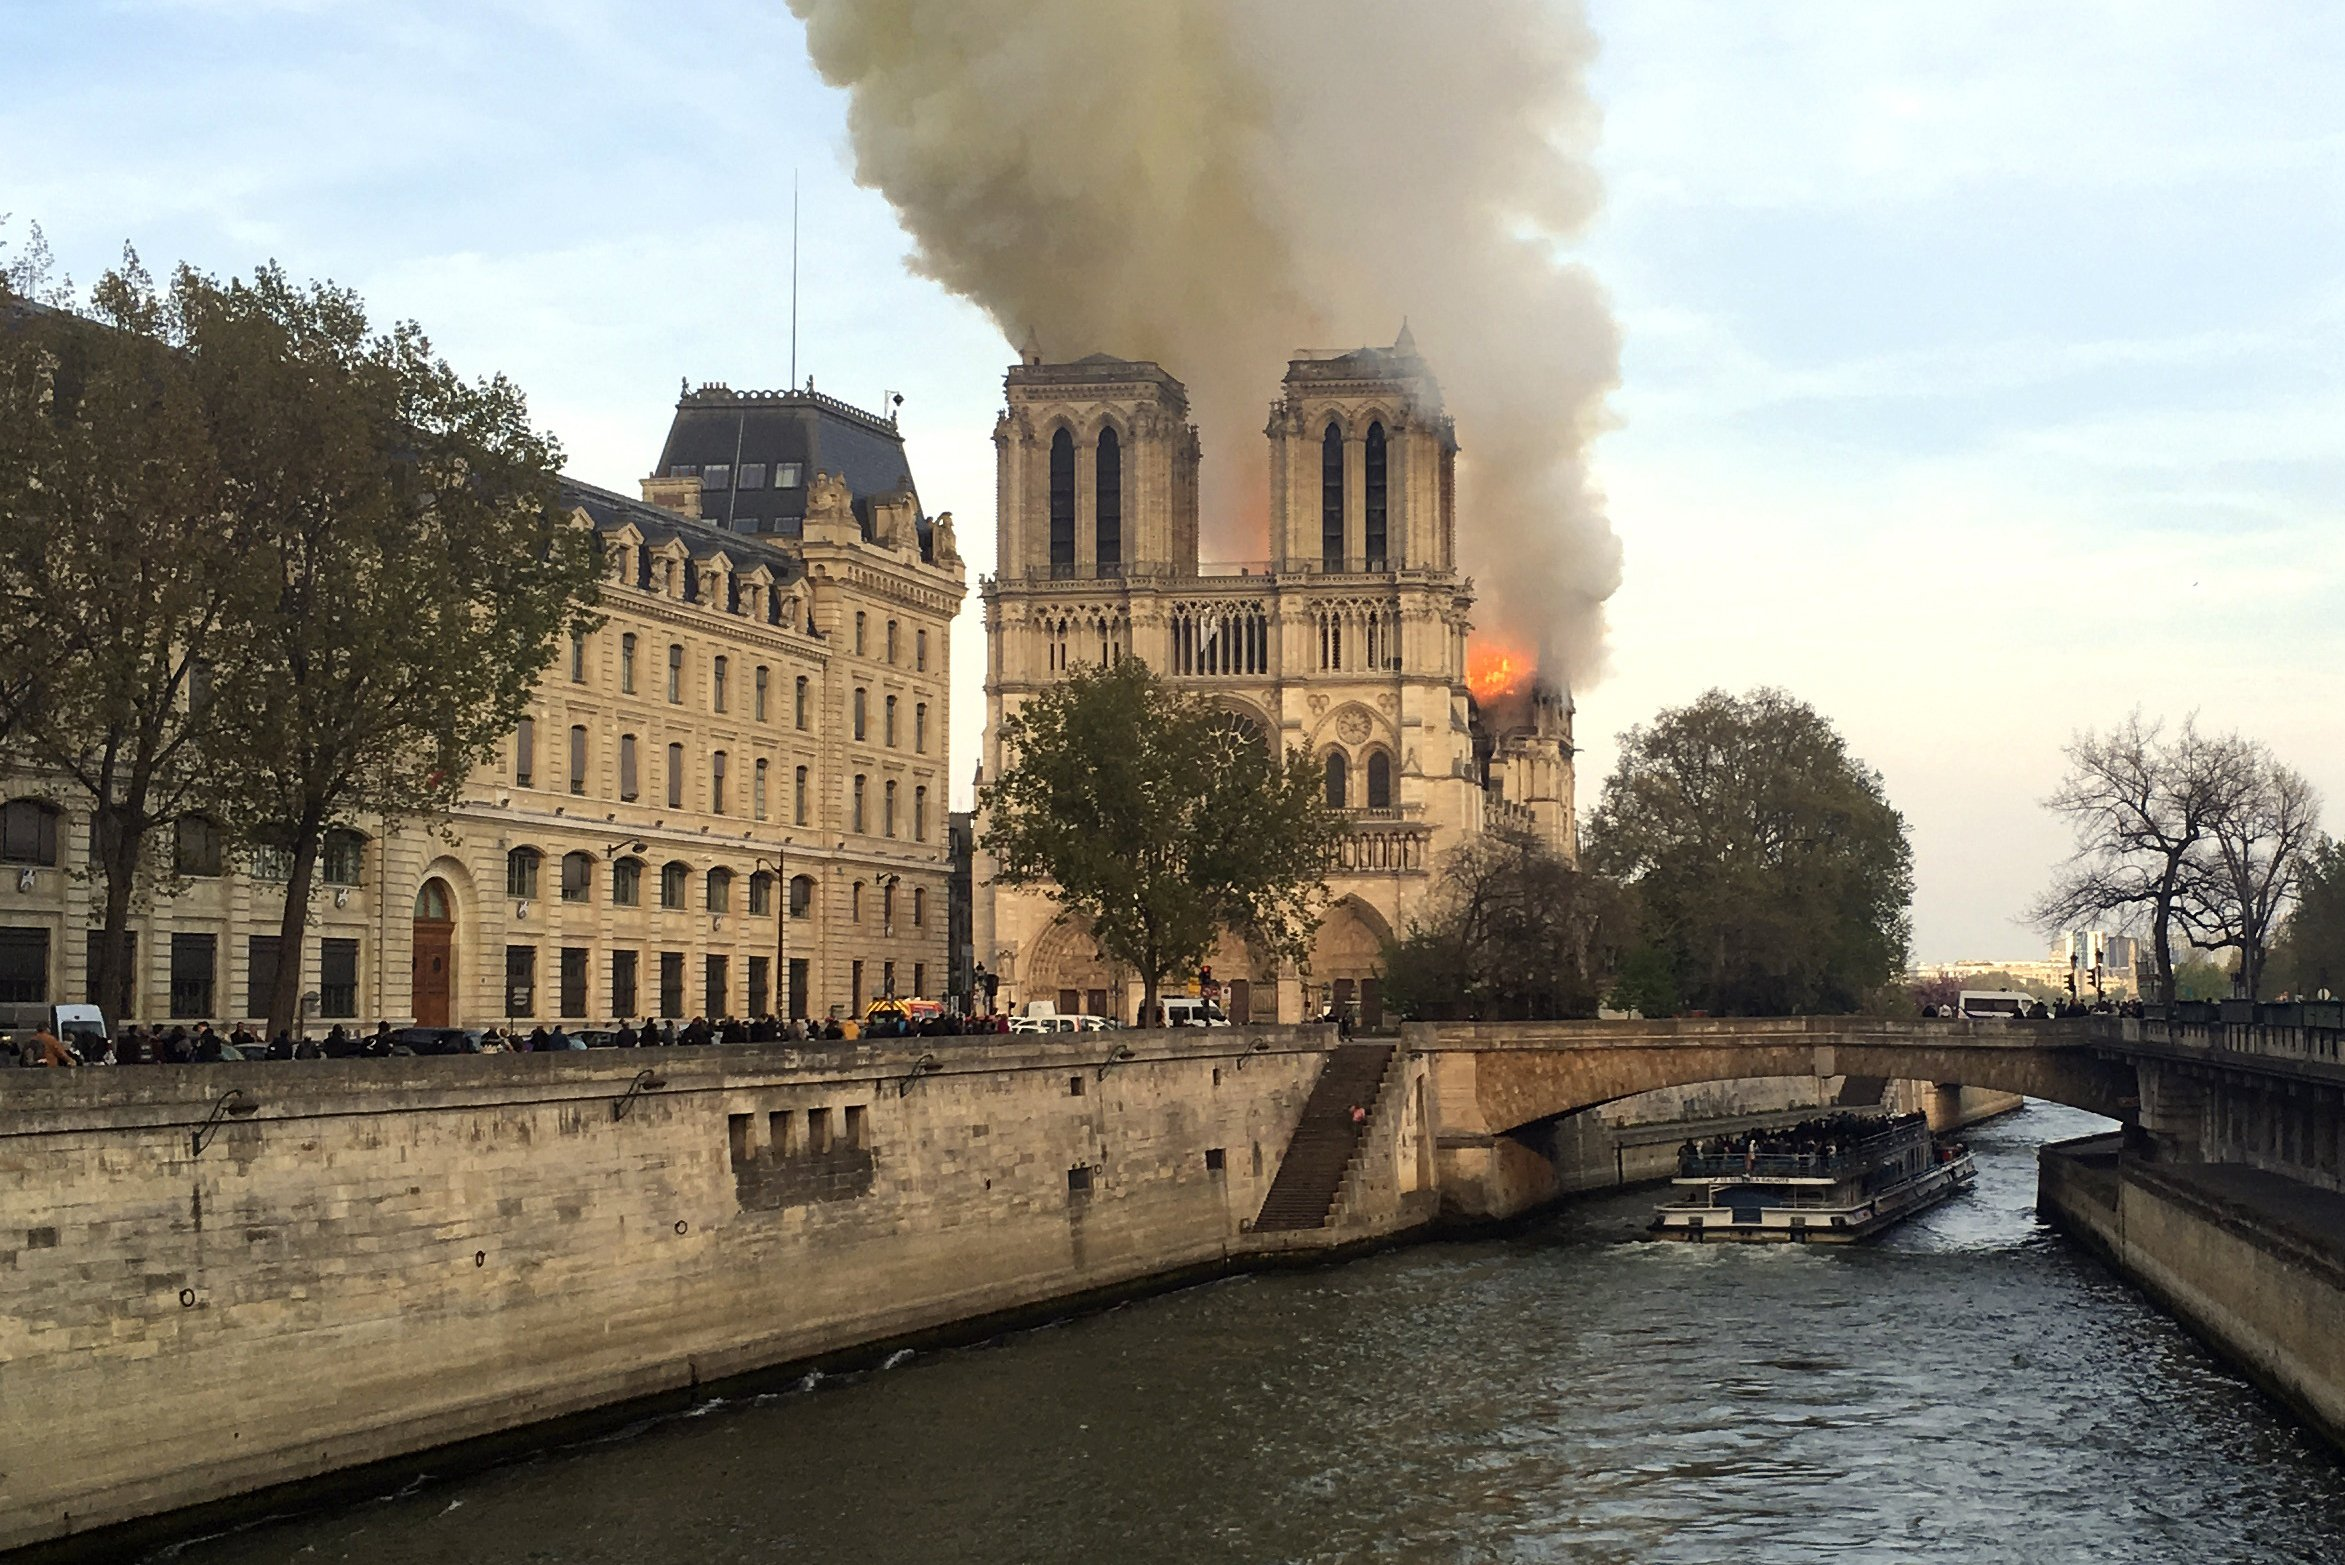 The Latest: Notre Dame spire collapses, interior in flames